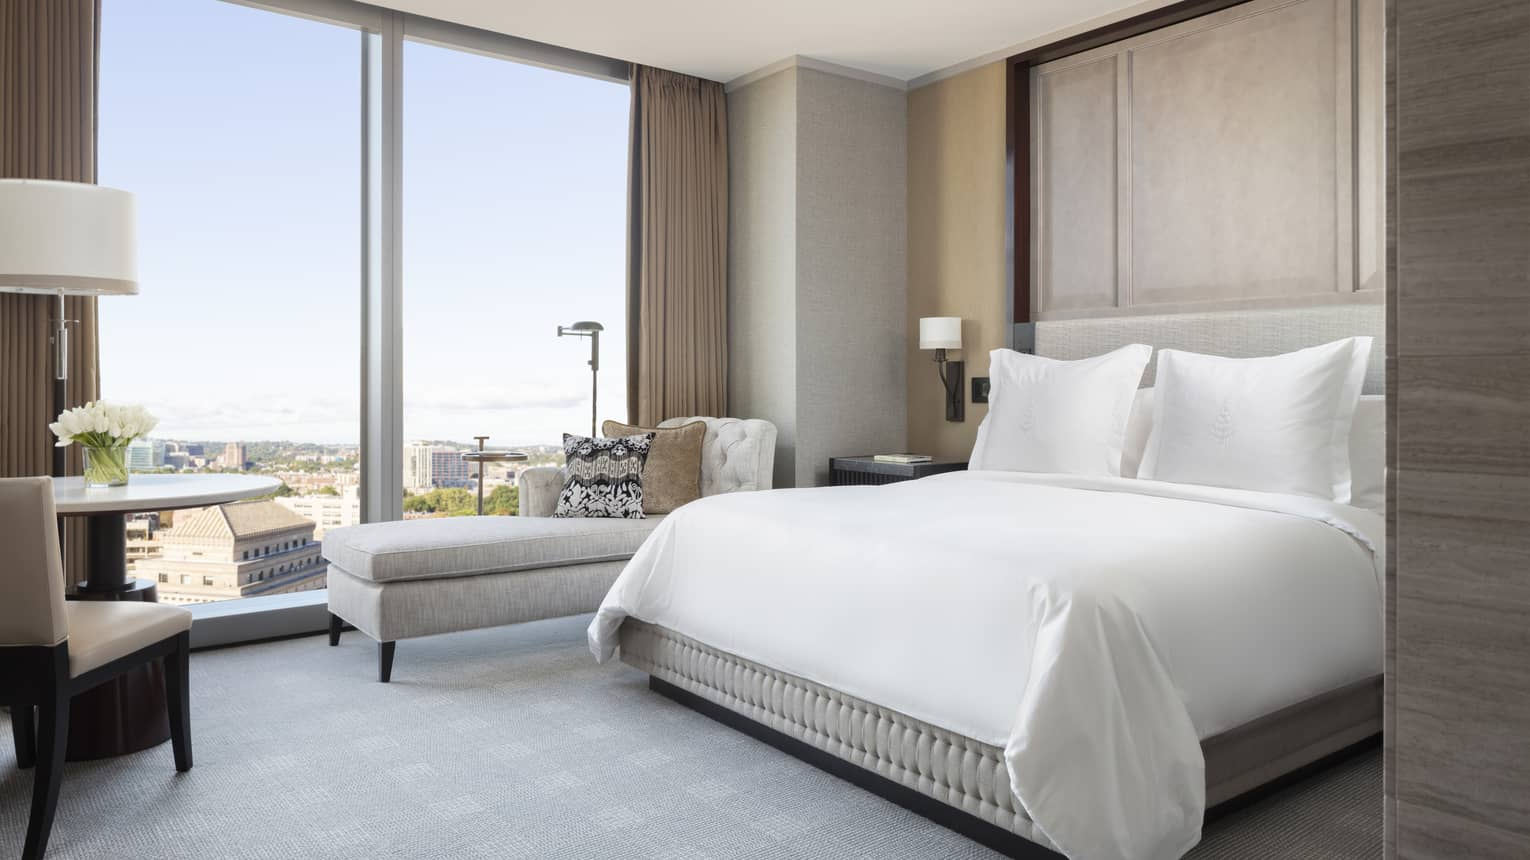 Premier Room, with floor to ceiling windows overlooking Boston's historical landmarks